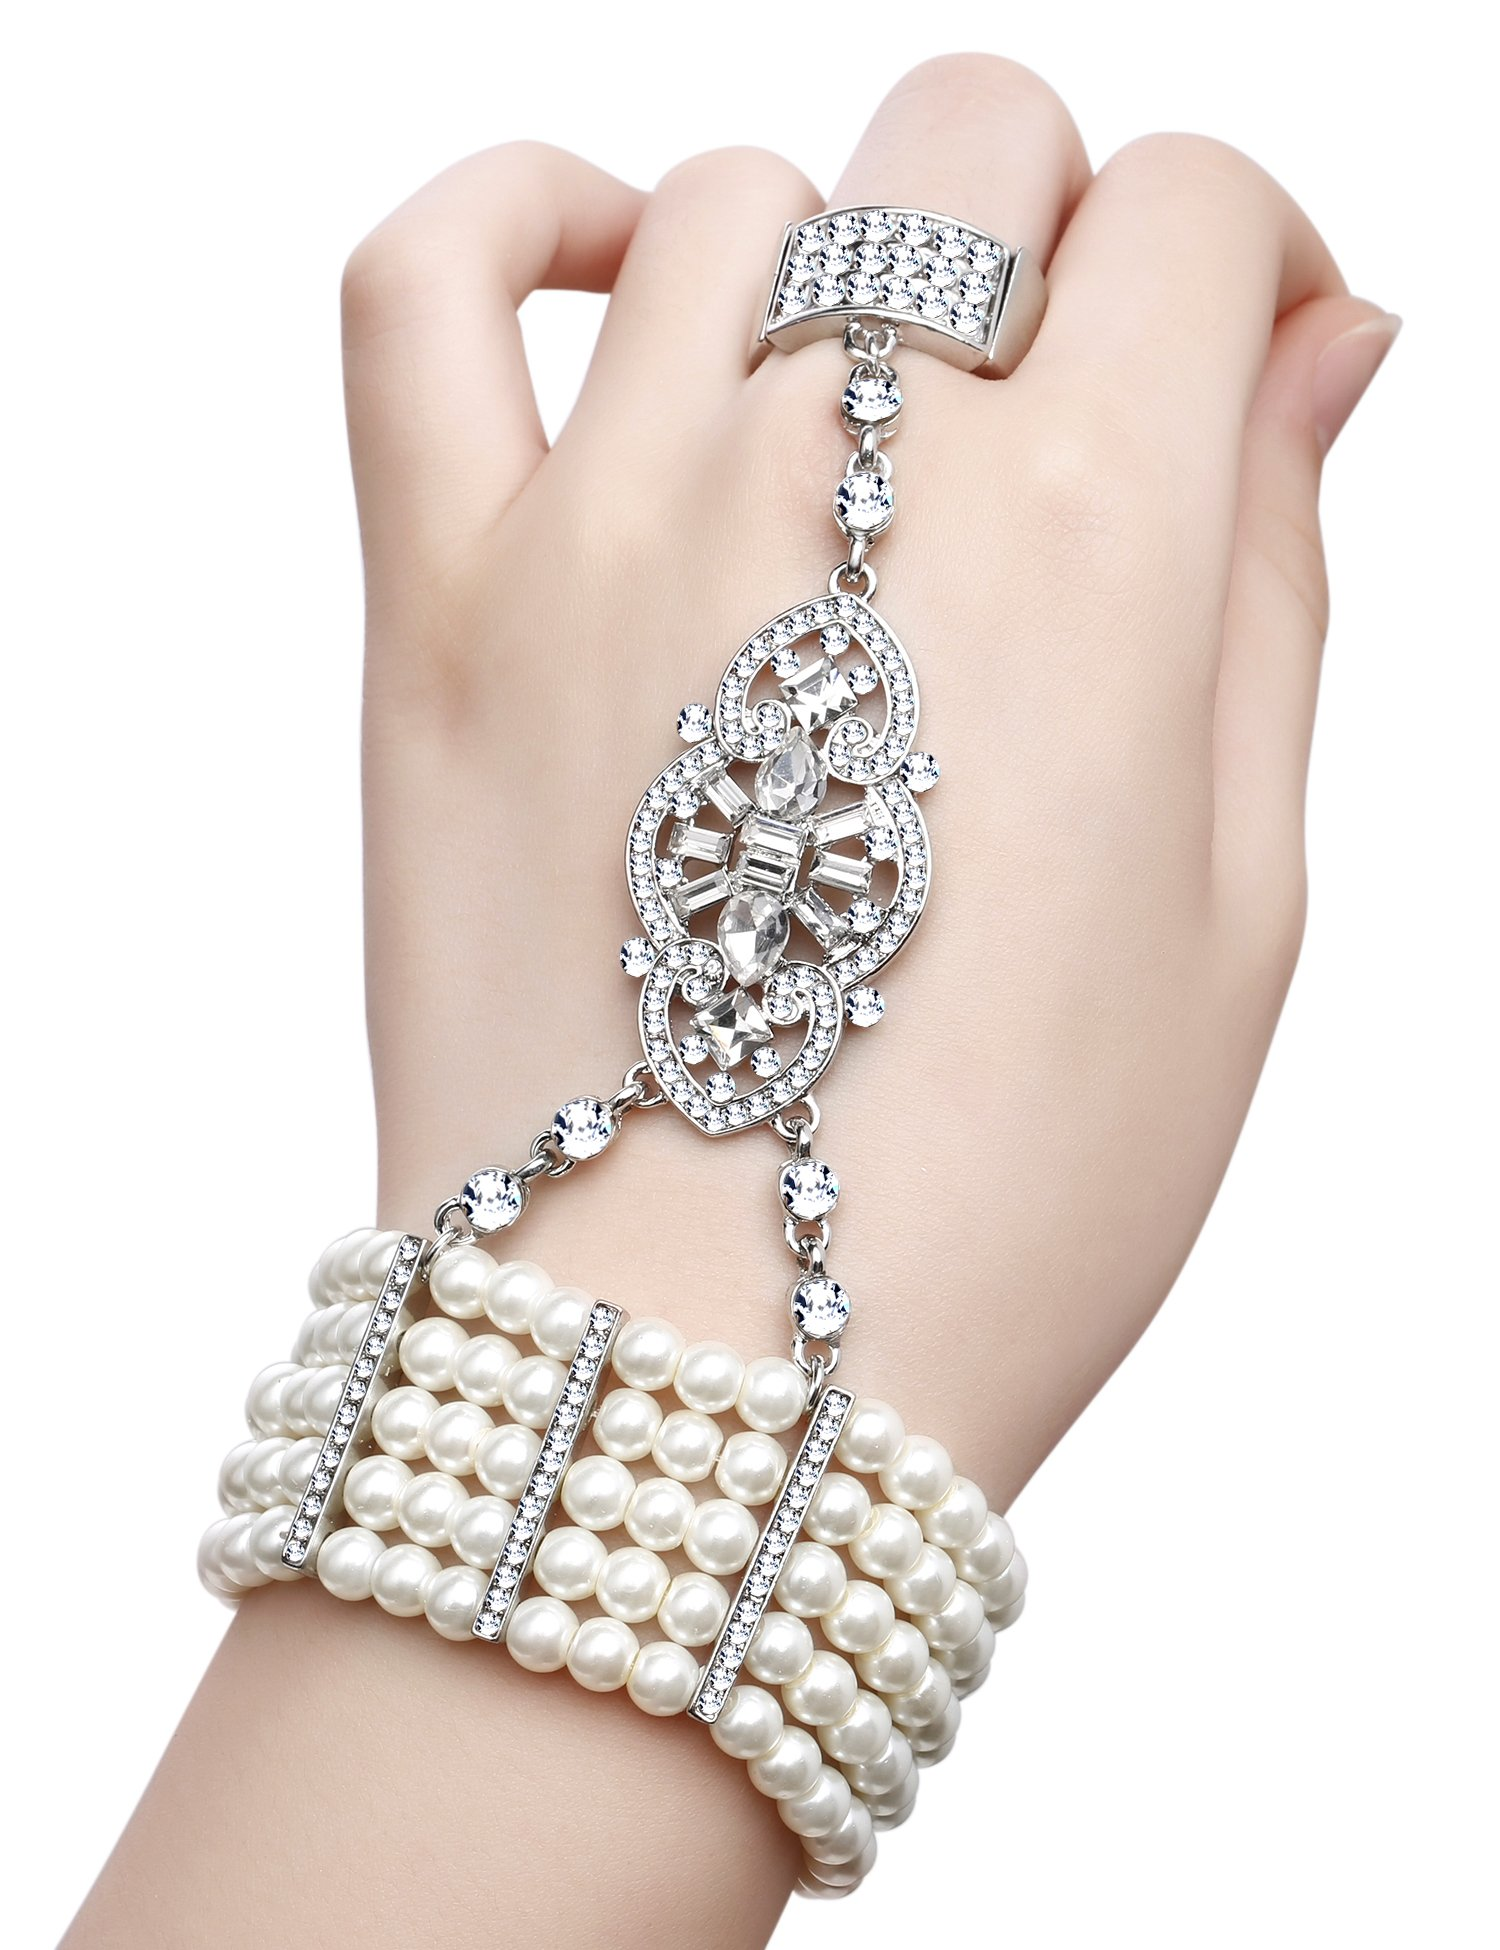 BABEYOND Art Deco Gatsby Inspired 1920s Flapper Bracelet Adjustable Ring Set Crystals Imitation Pearl (Style 2-silver)